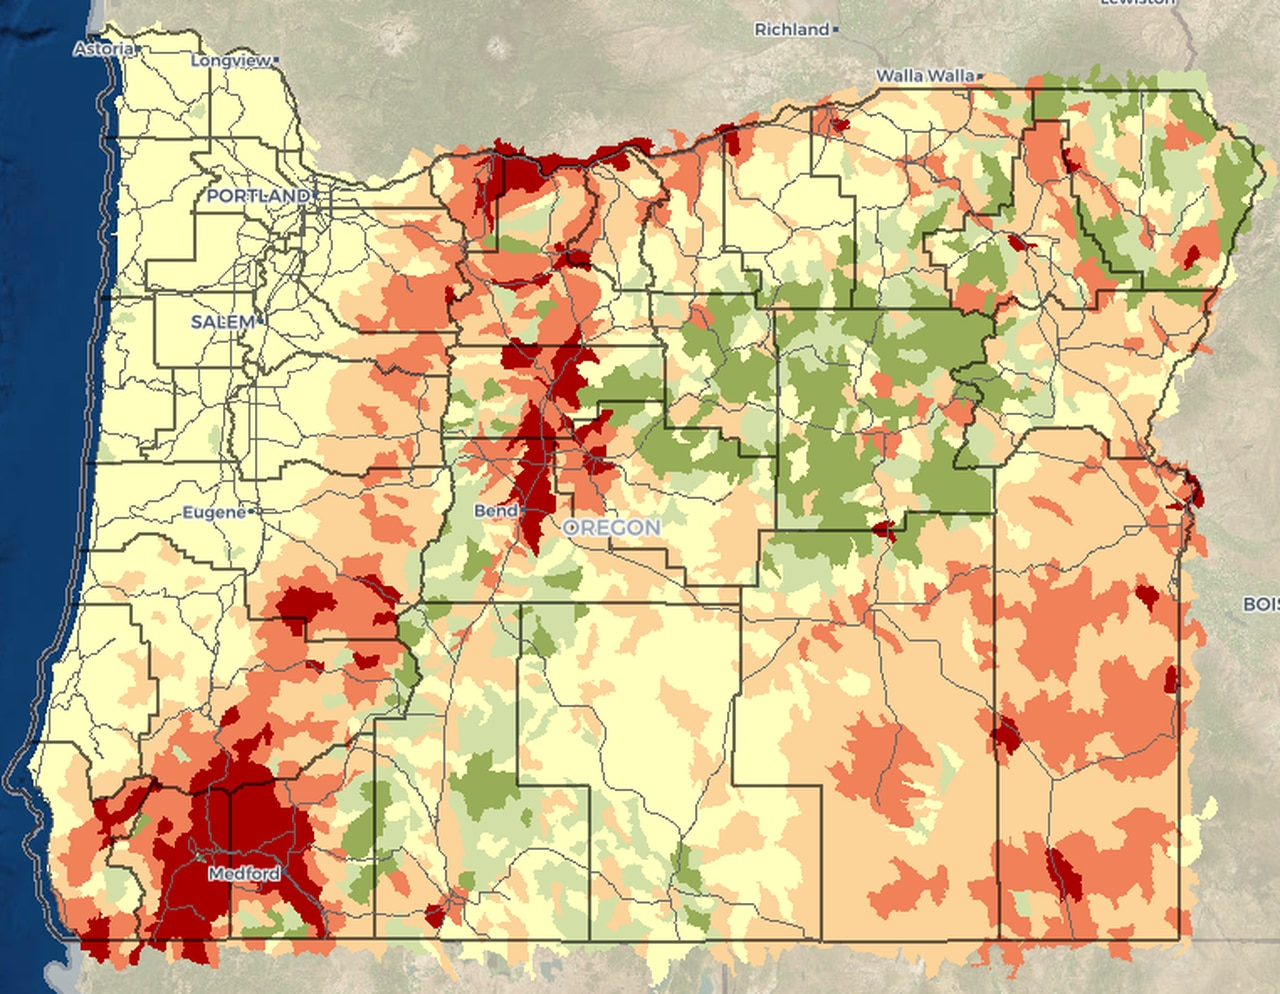 Our core competency lies in wildfire data, information, and mapping services. New Tool Allows Oregon Residents To Map Wildfire Risk To Their Exact Location Oregonlive Com